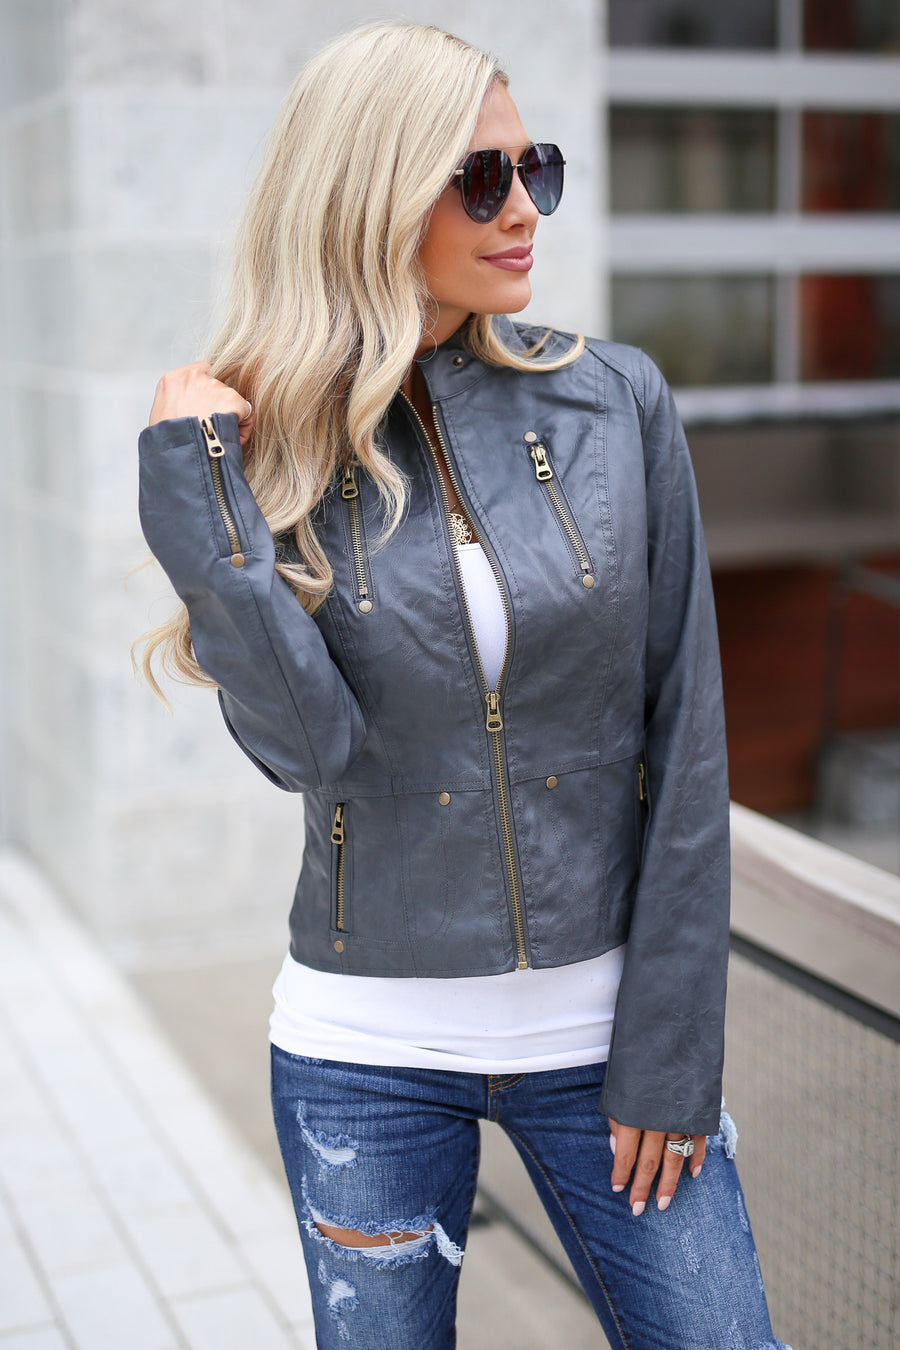 Ready For Take Off Jacket - Charcoal women's leather jacket, zipper, pockets, Closet Candy Boutique 1